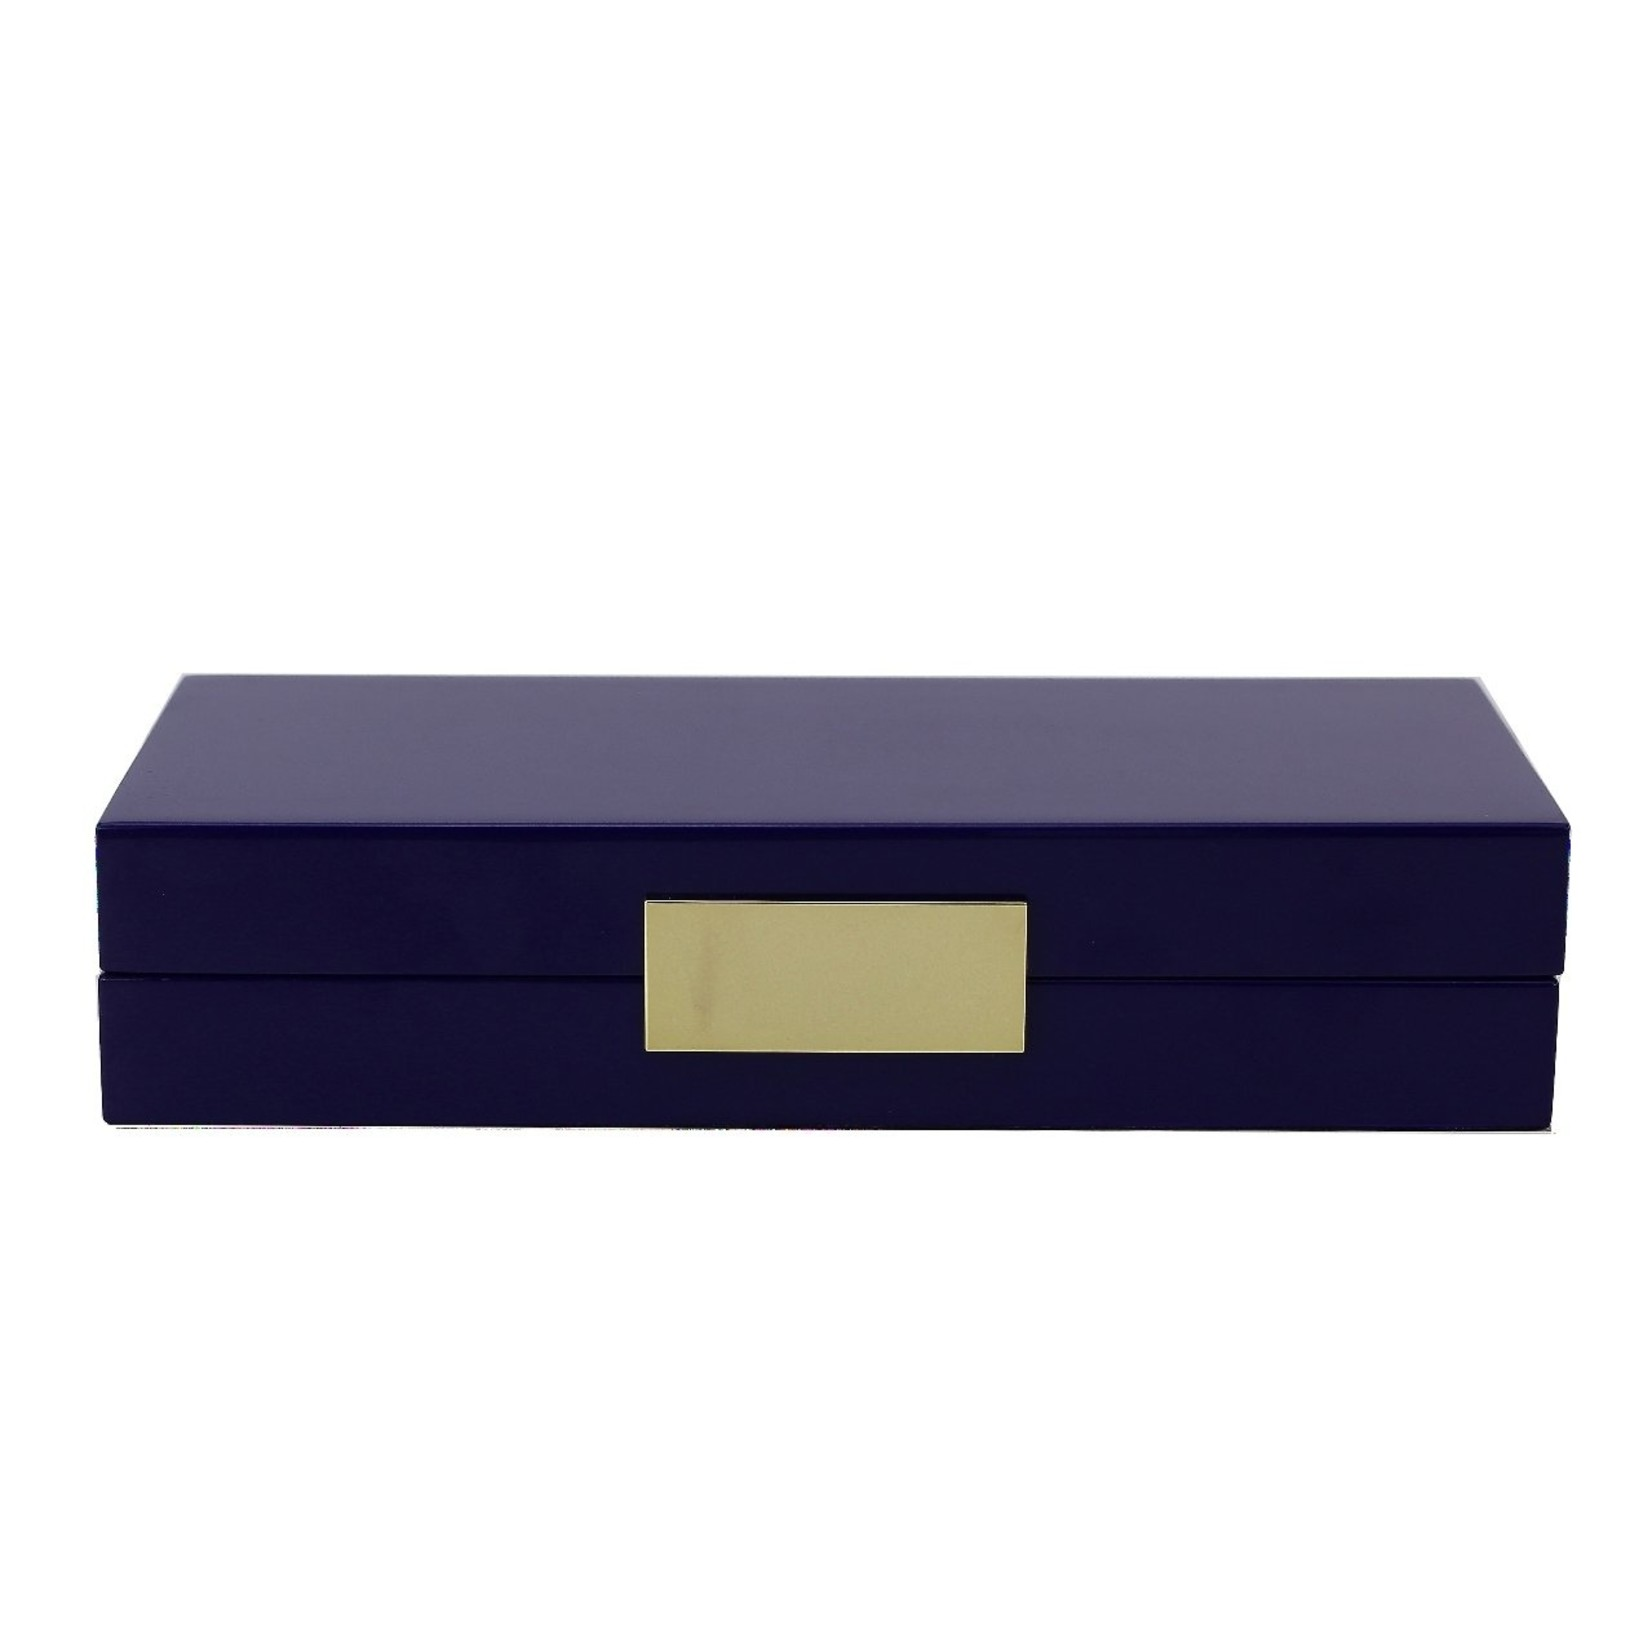 Addison Ross Lacquer Box with Gold